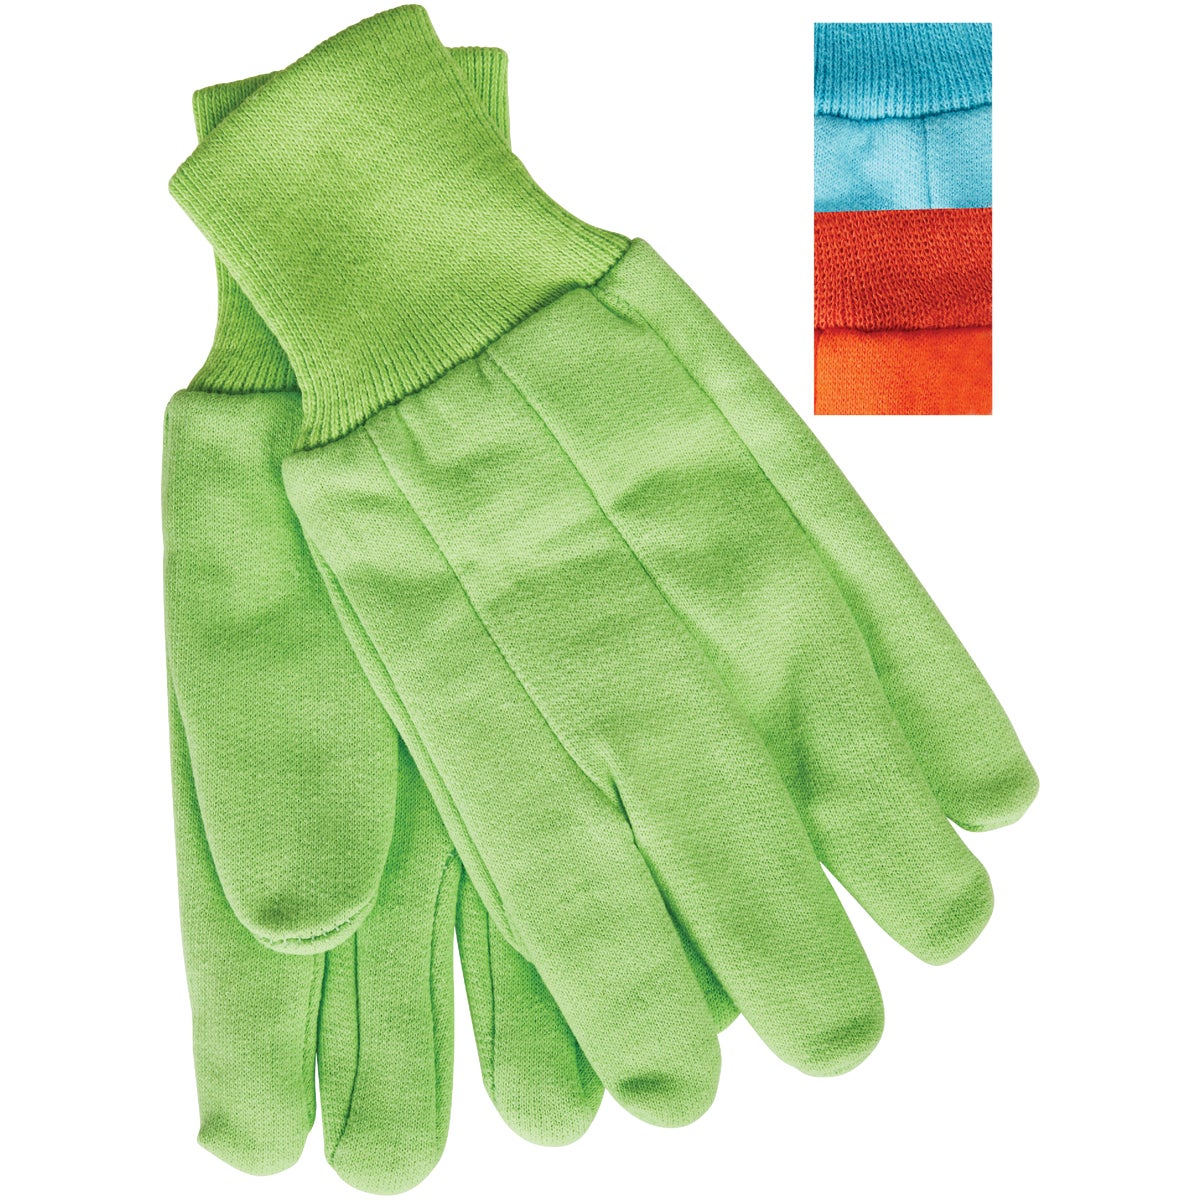 LADIES JERSEY GLOVE - 708620 by Do it Best